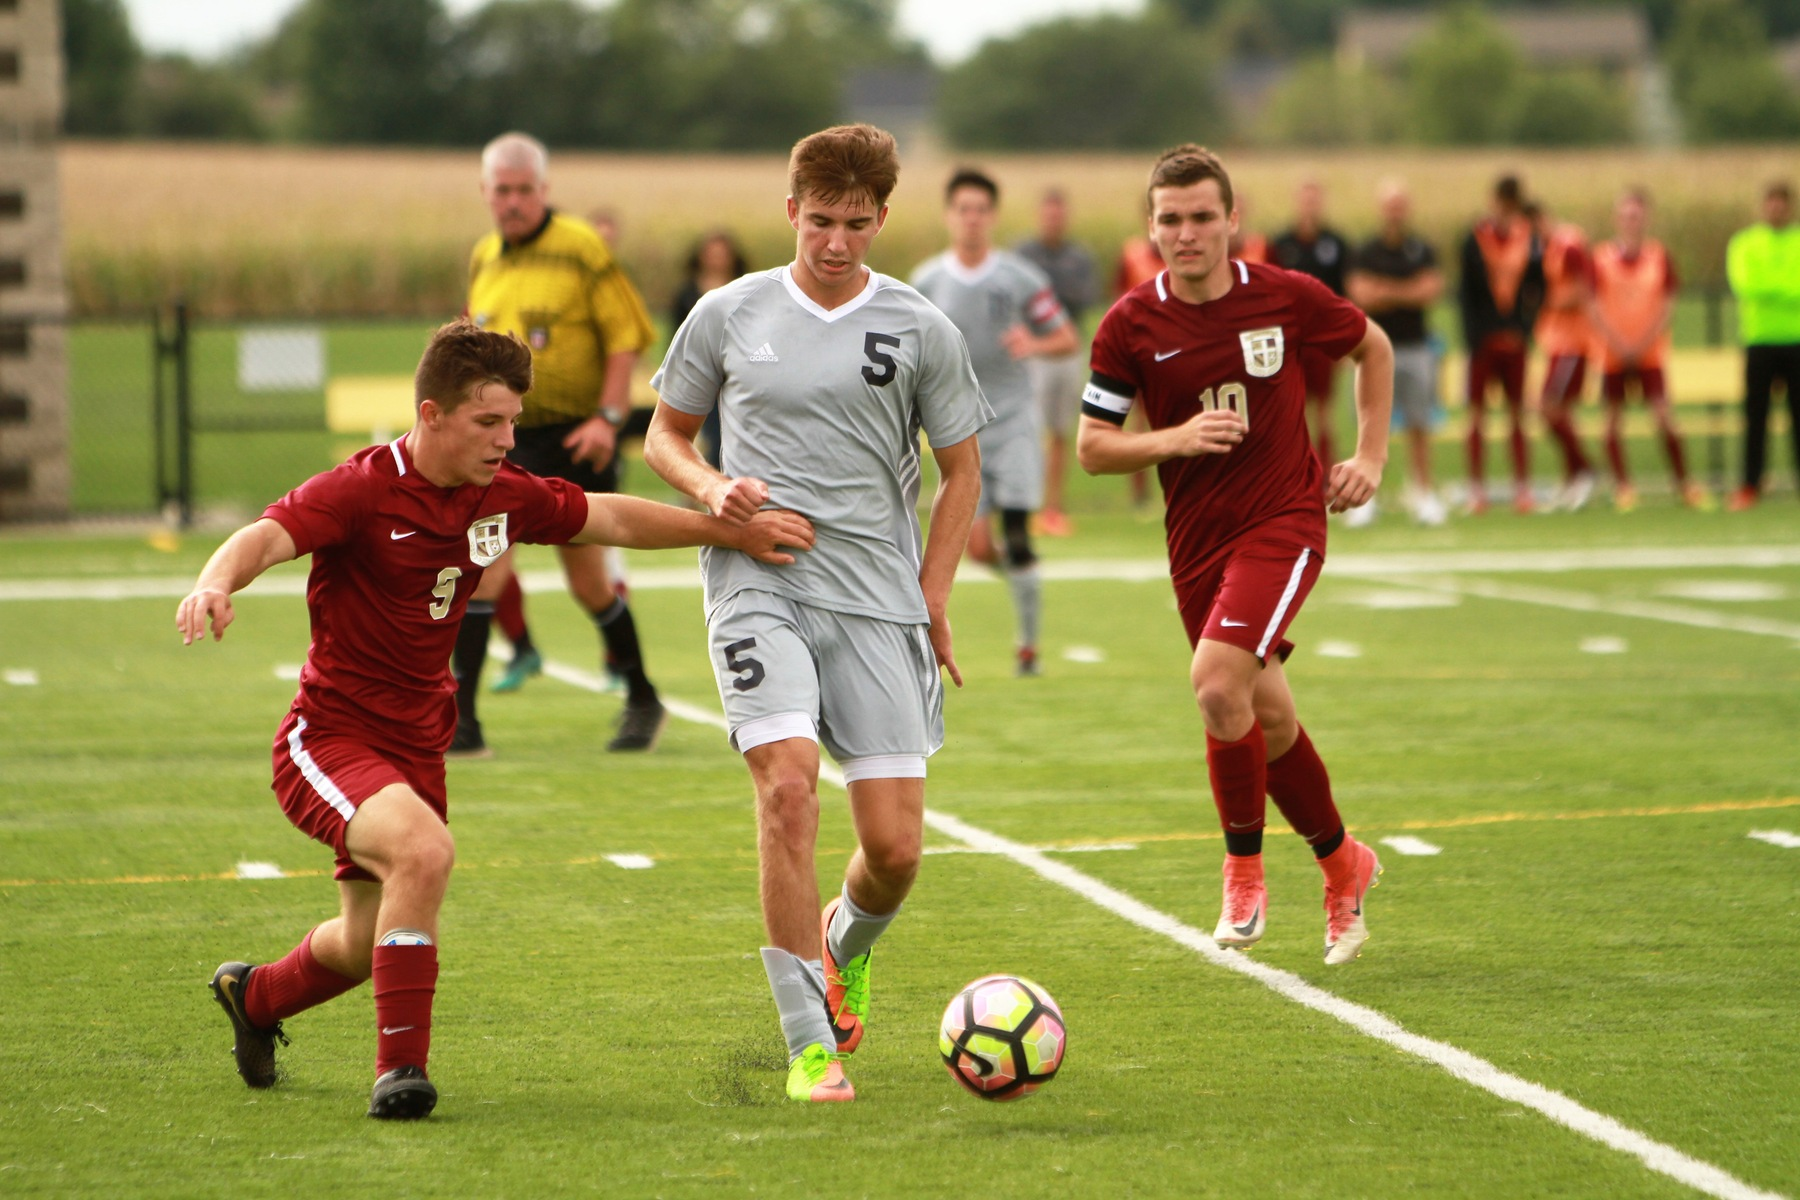 Men's Soccer Team Loses Season Opener, 3-1